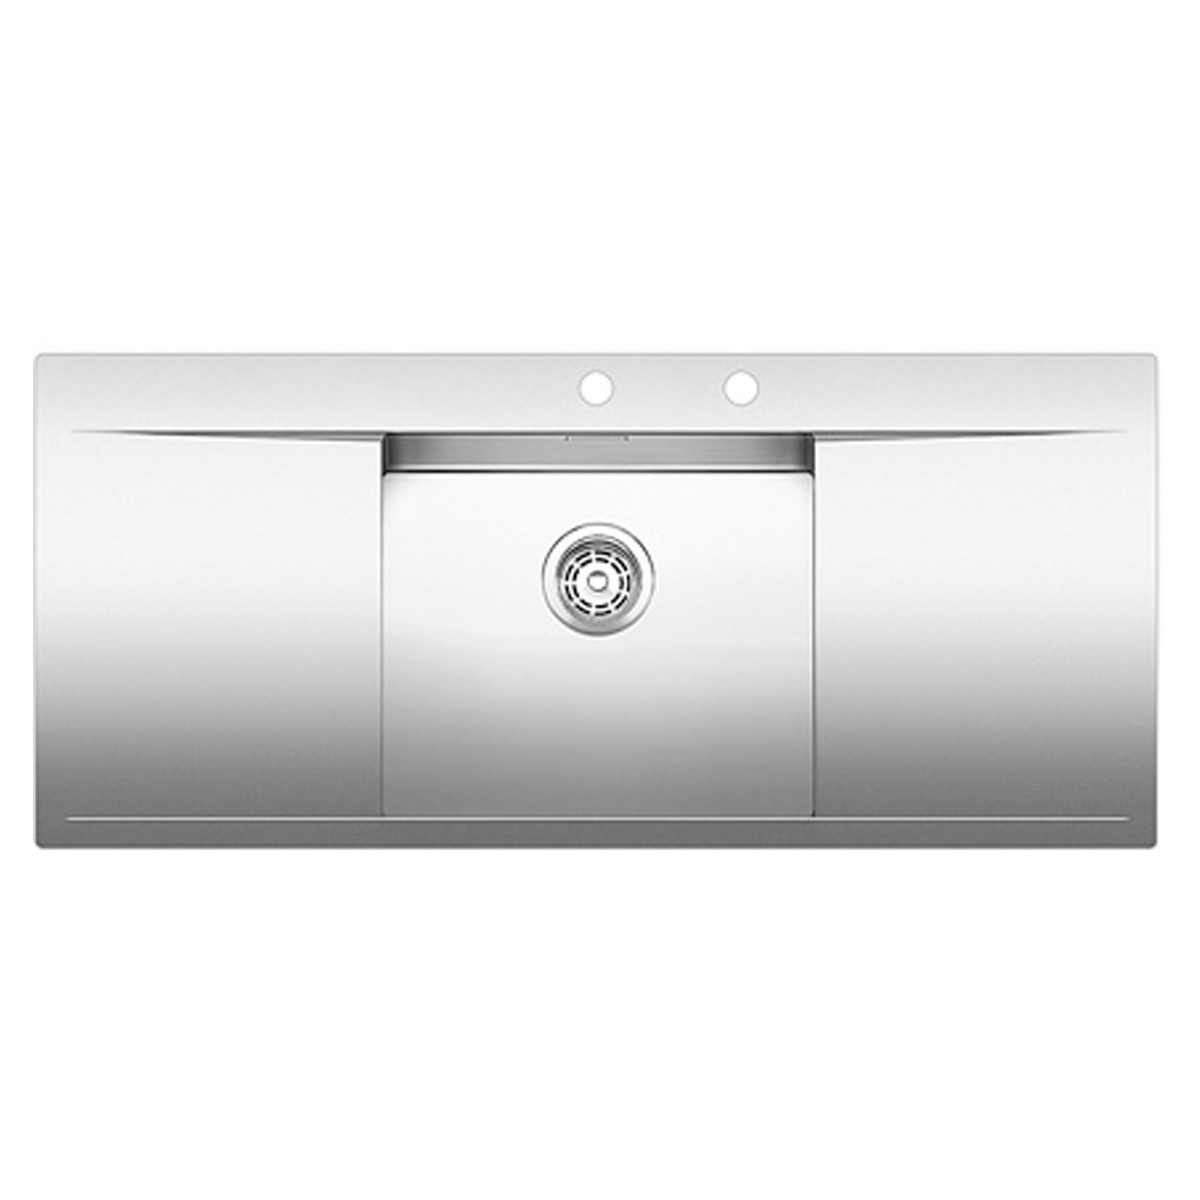 Blanco BFLOW5SIFK5 60cm Cabinet, Single Bowl and Double Drainer Sink ...